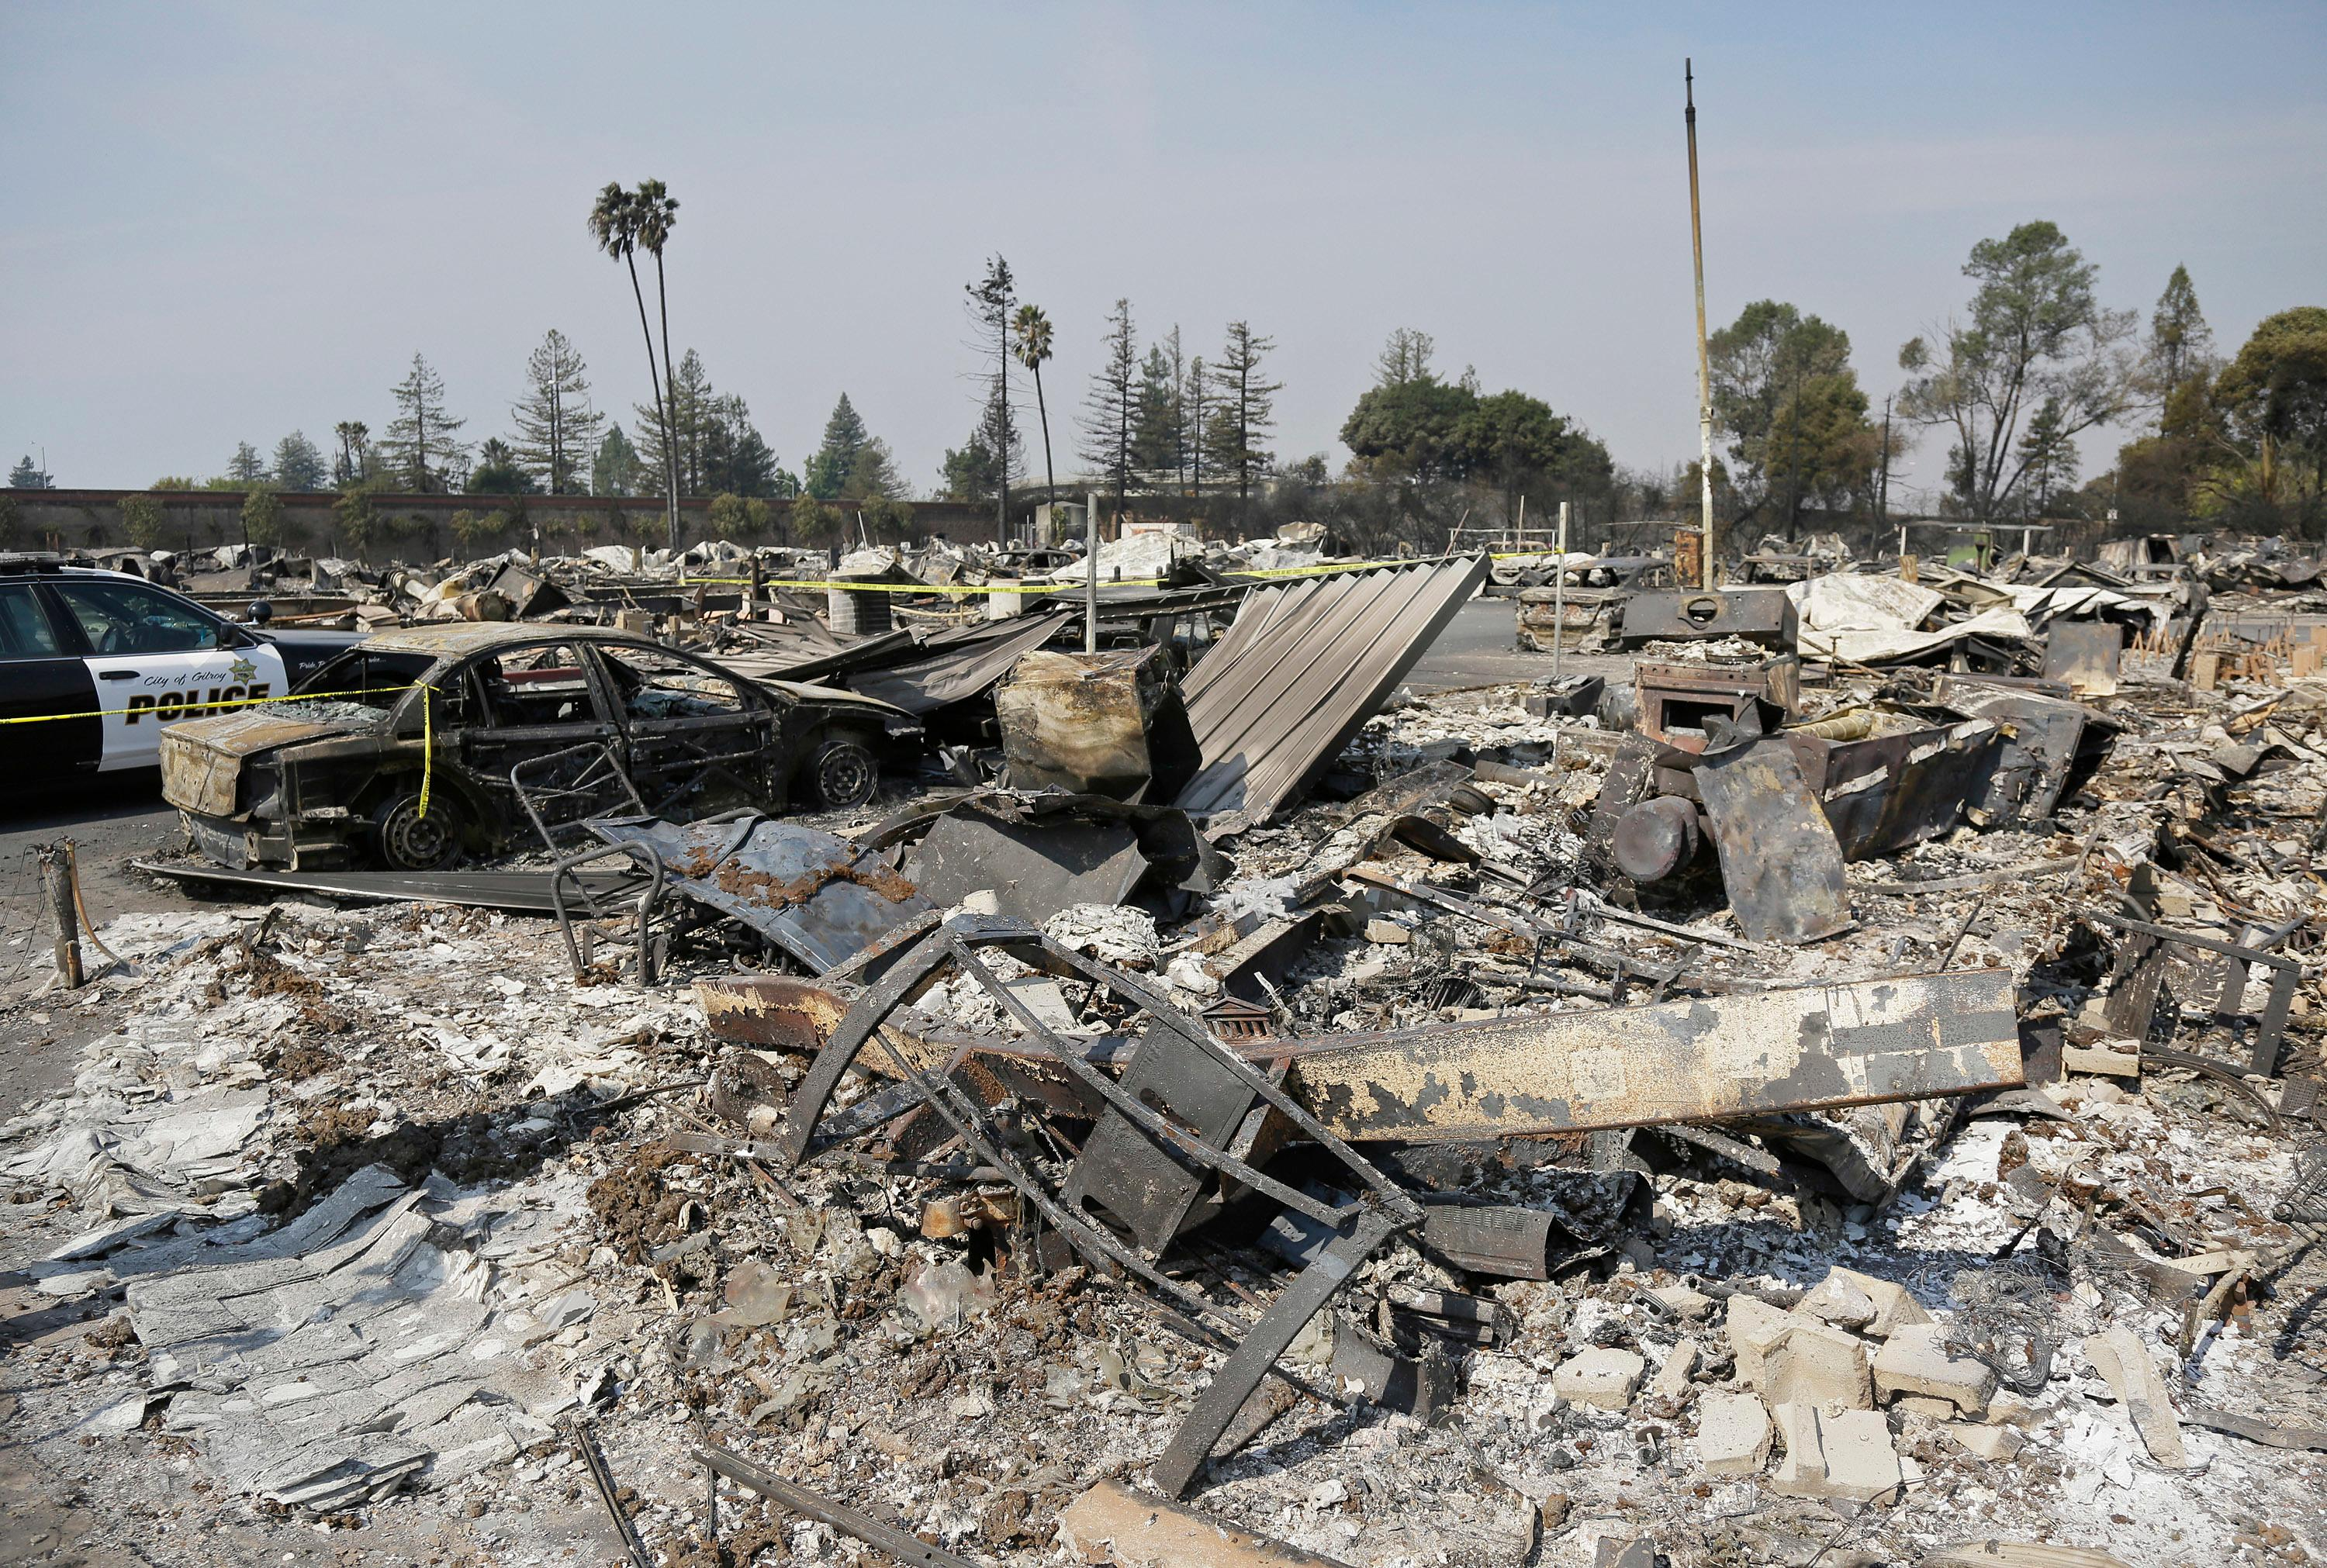 Shown are the remains of where Linda Tunis lived at the Journey's End mobile home park Wednesday, Oct. 11, 2017, in Santa Rosa, Calif. Jessica Tunis is searching for her missing mother, Linda Tunis, who was living at the mobile home park when the wildfires struck. (AP Photo/Eric Risberg)